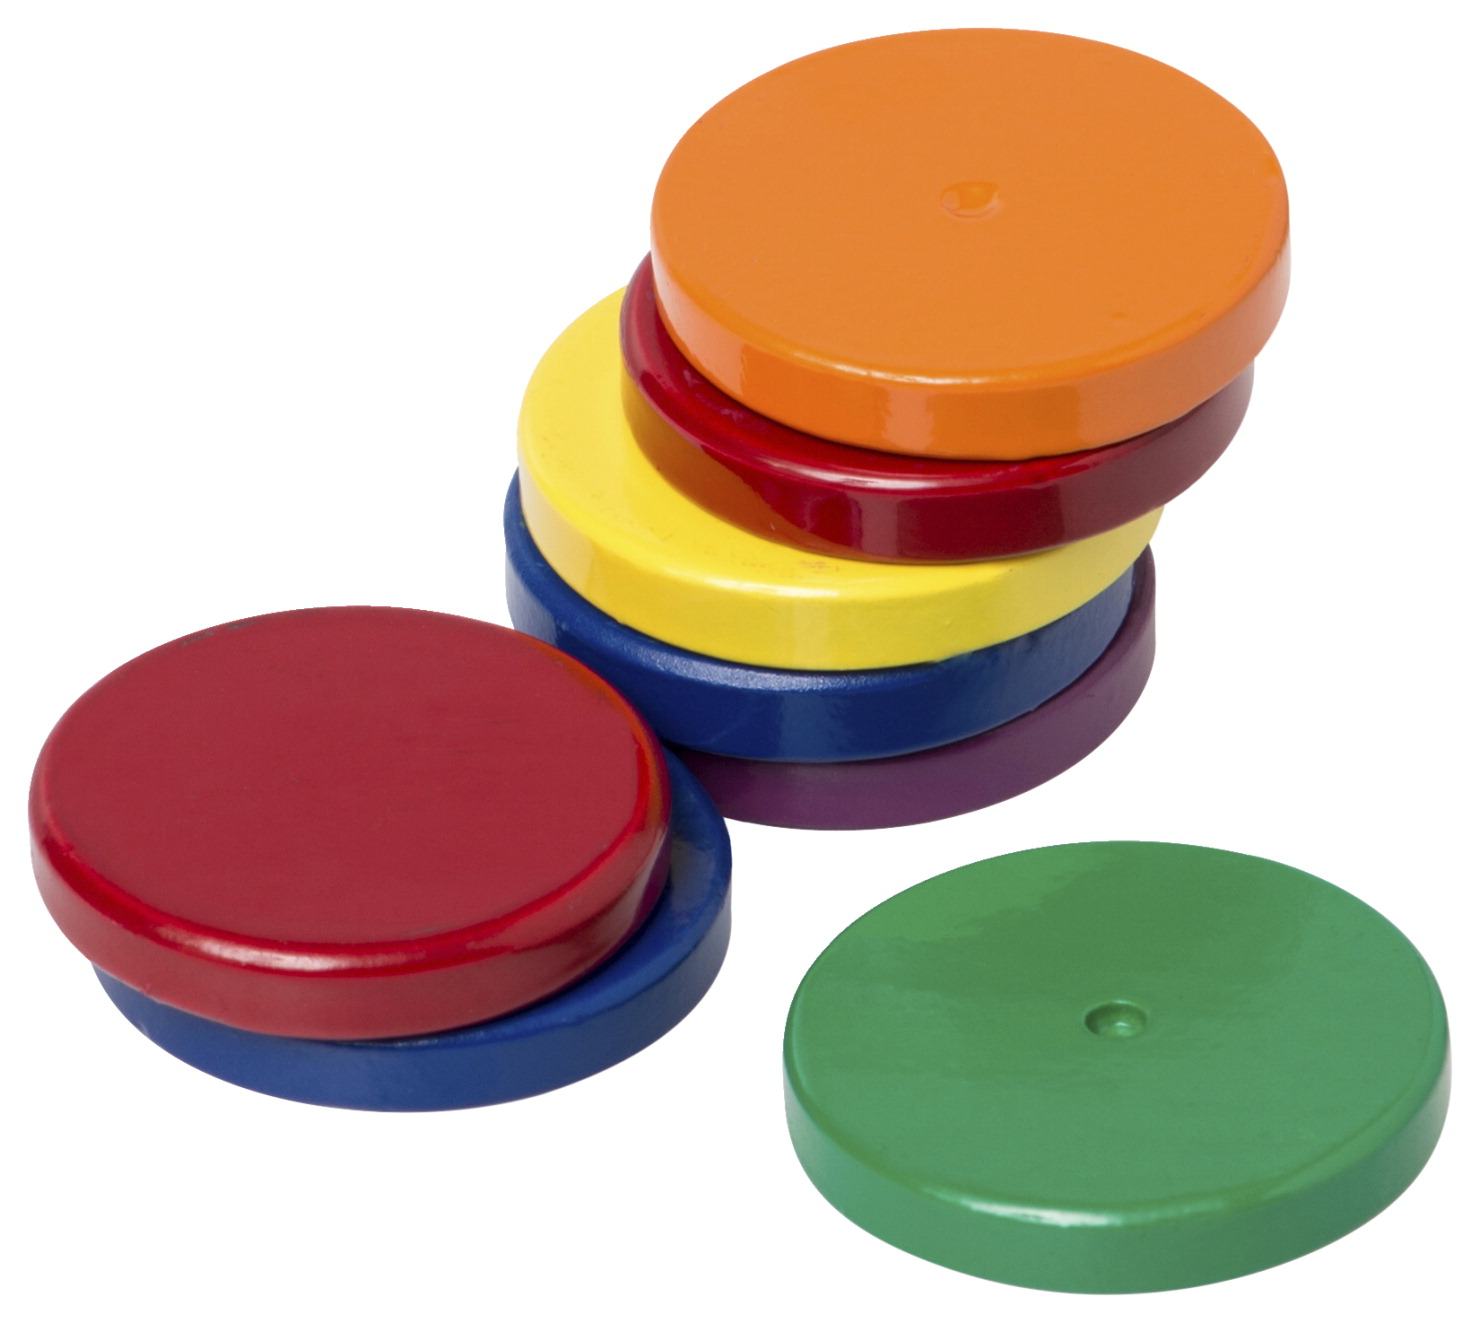 Dowling Magnets Ceramic Disk Magnets, 1 Inch, Assorted, Set of 8